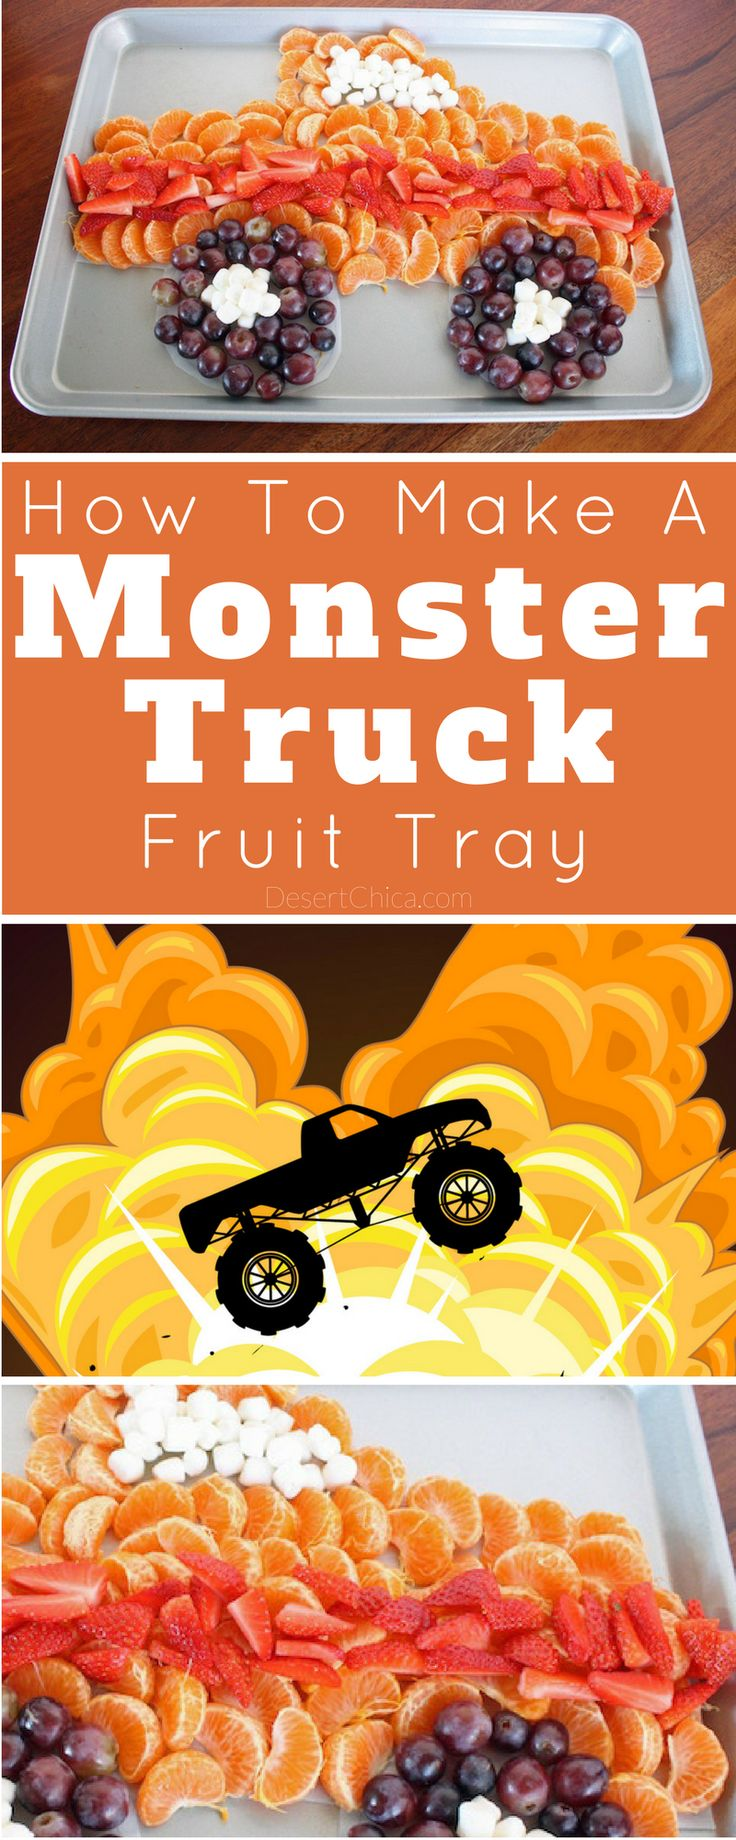 Headed to Monster Jam or having a monster truck themed party, check out this easy monster truck fruit tray. It's healthy, fun and yummy. via @DesertChica